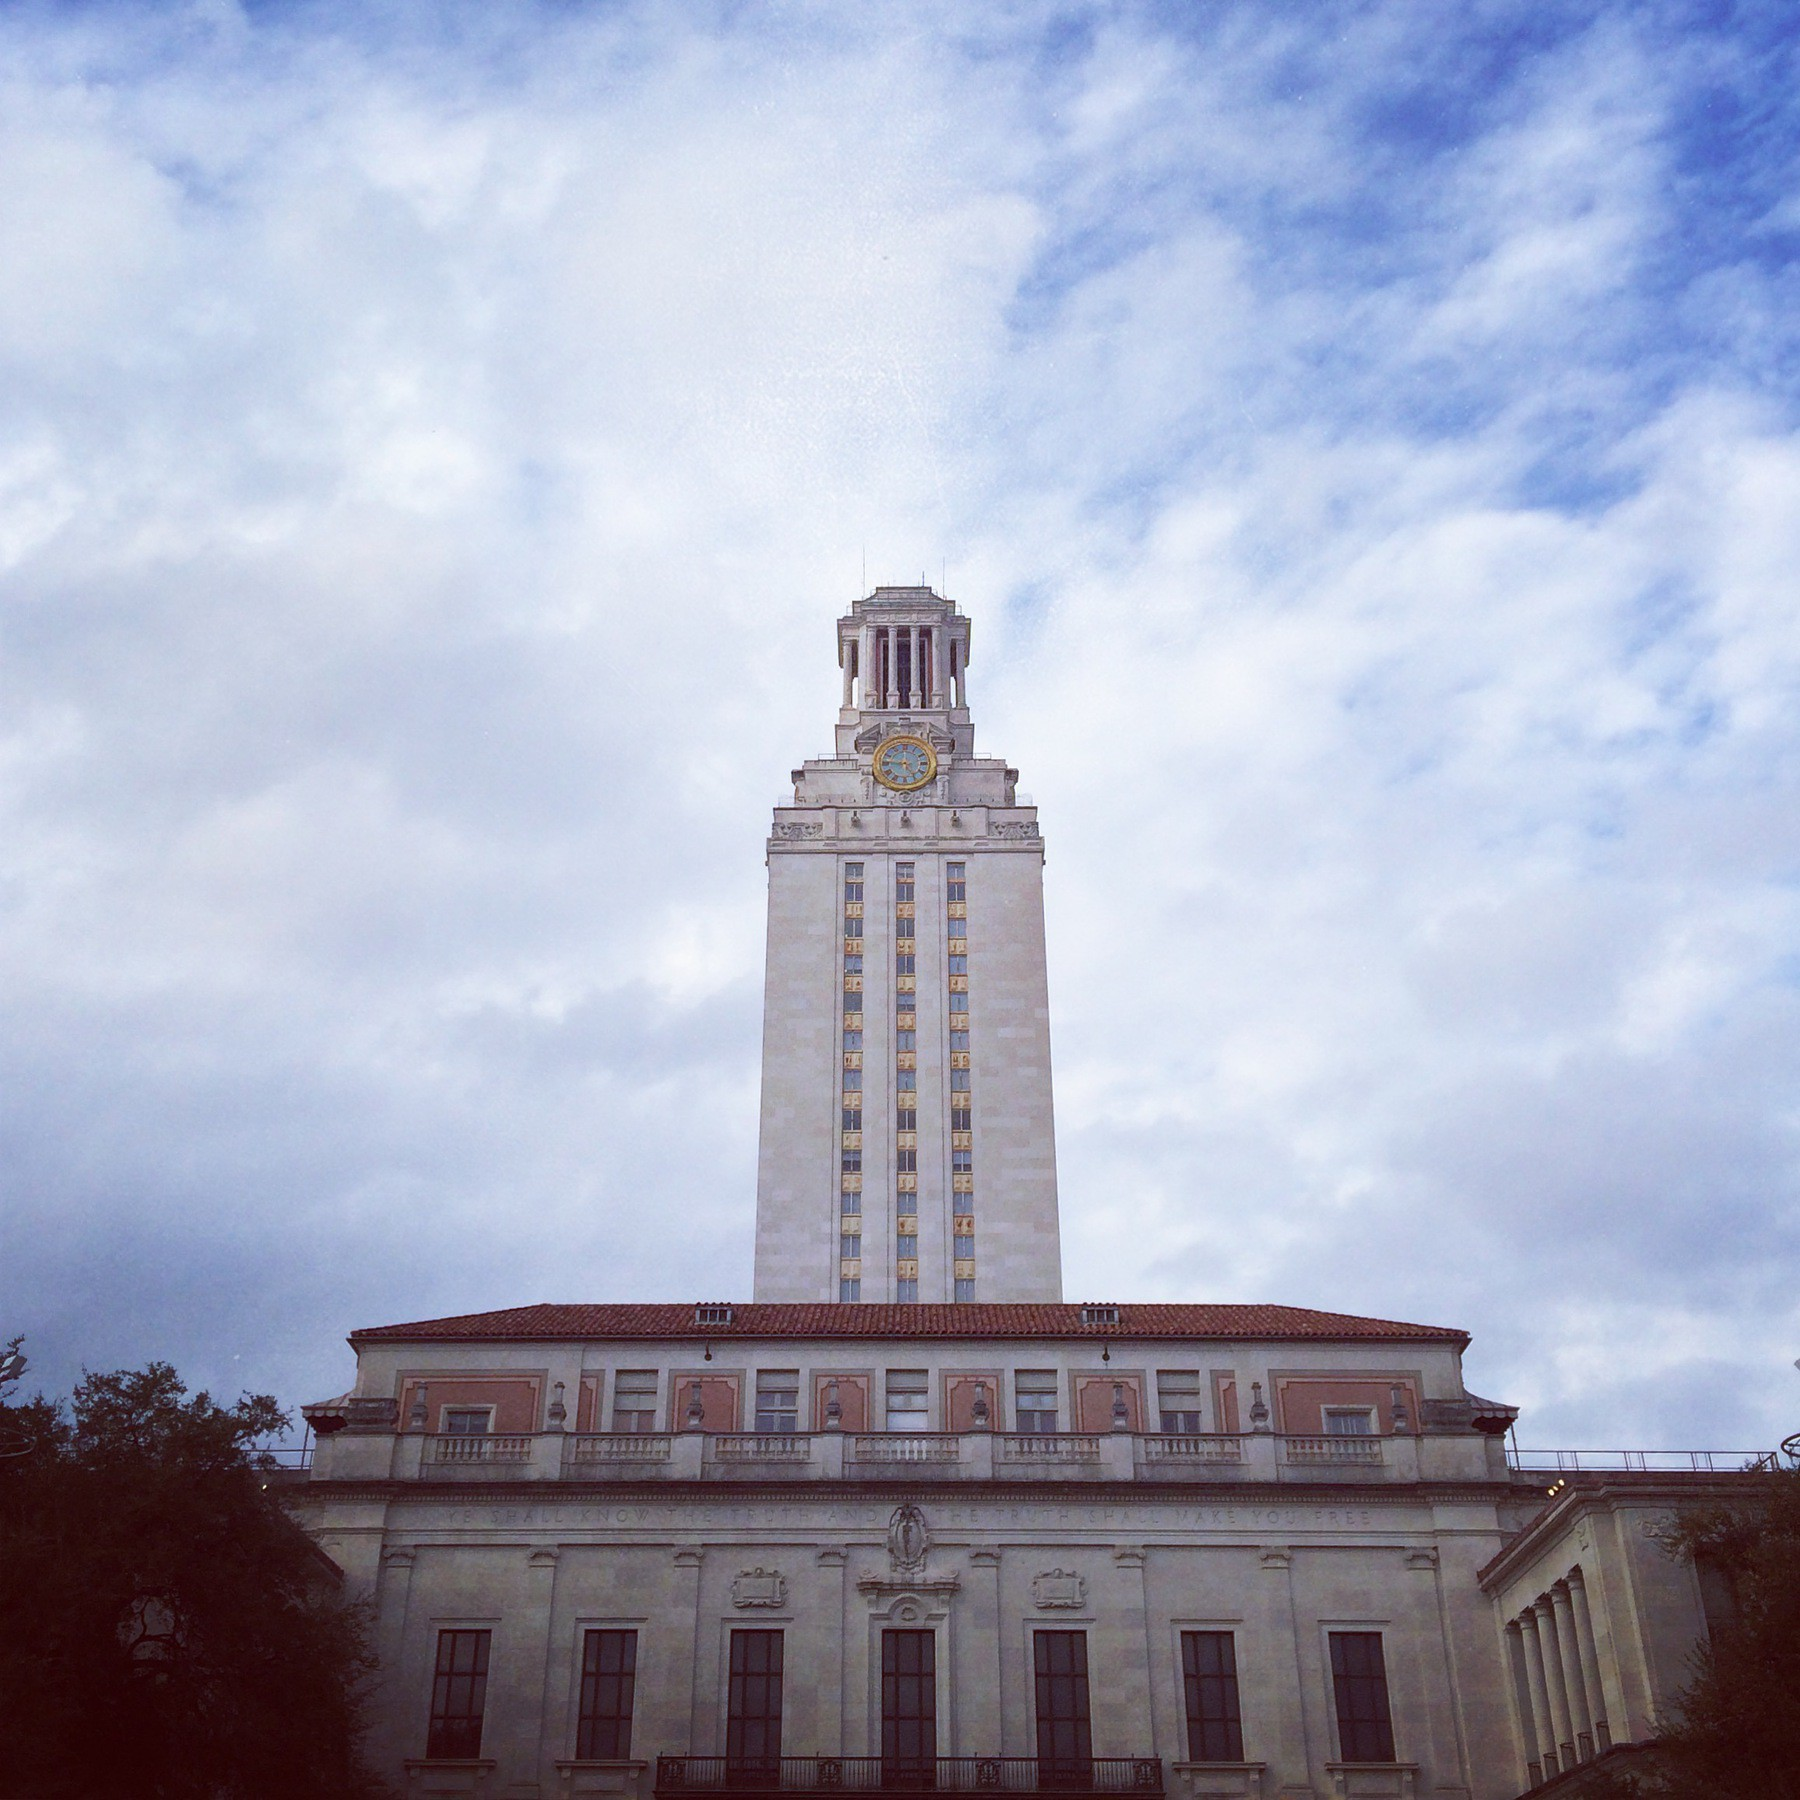 Walking around the UT Tower